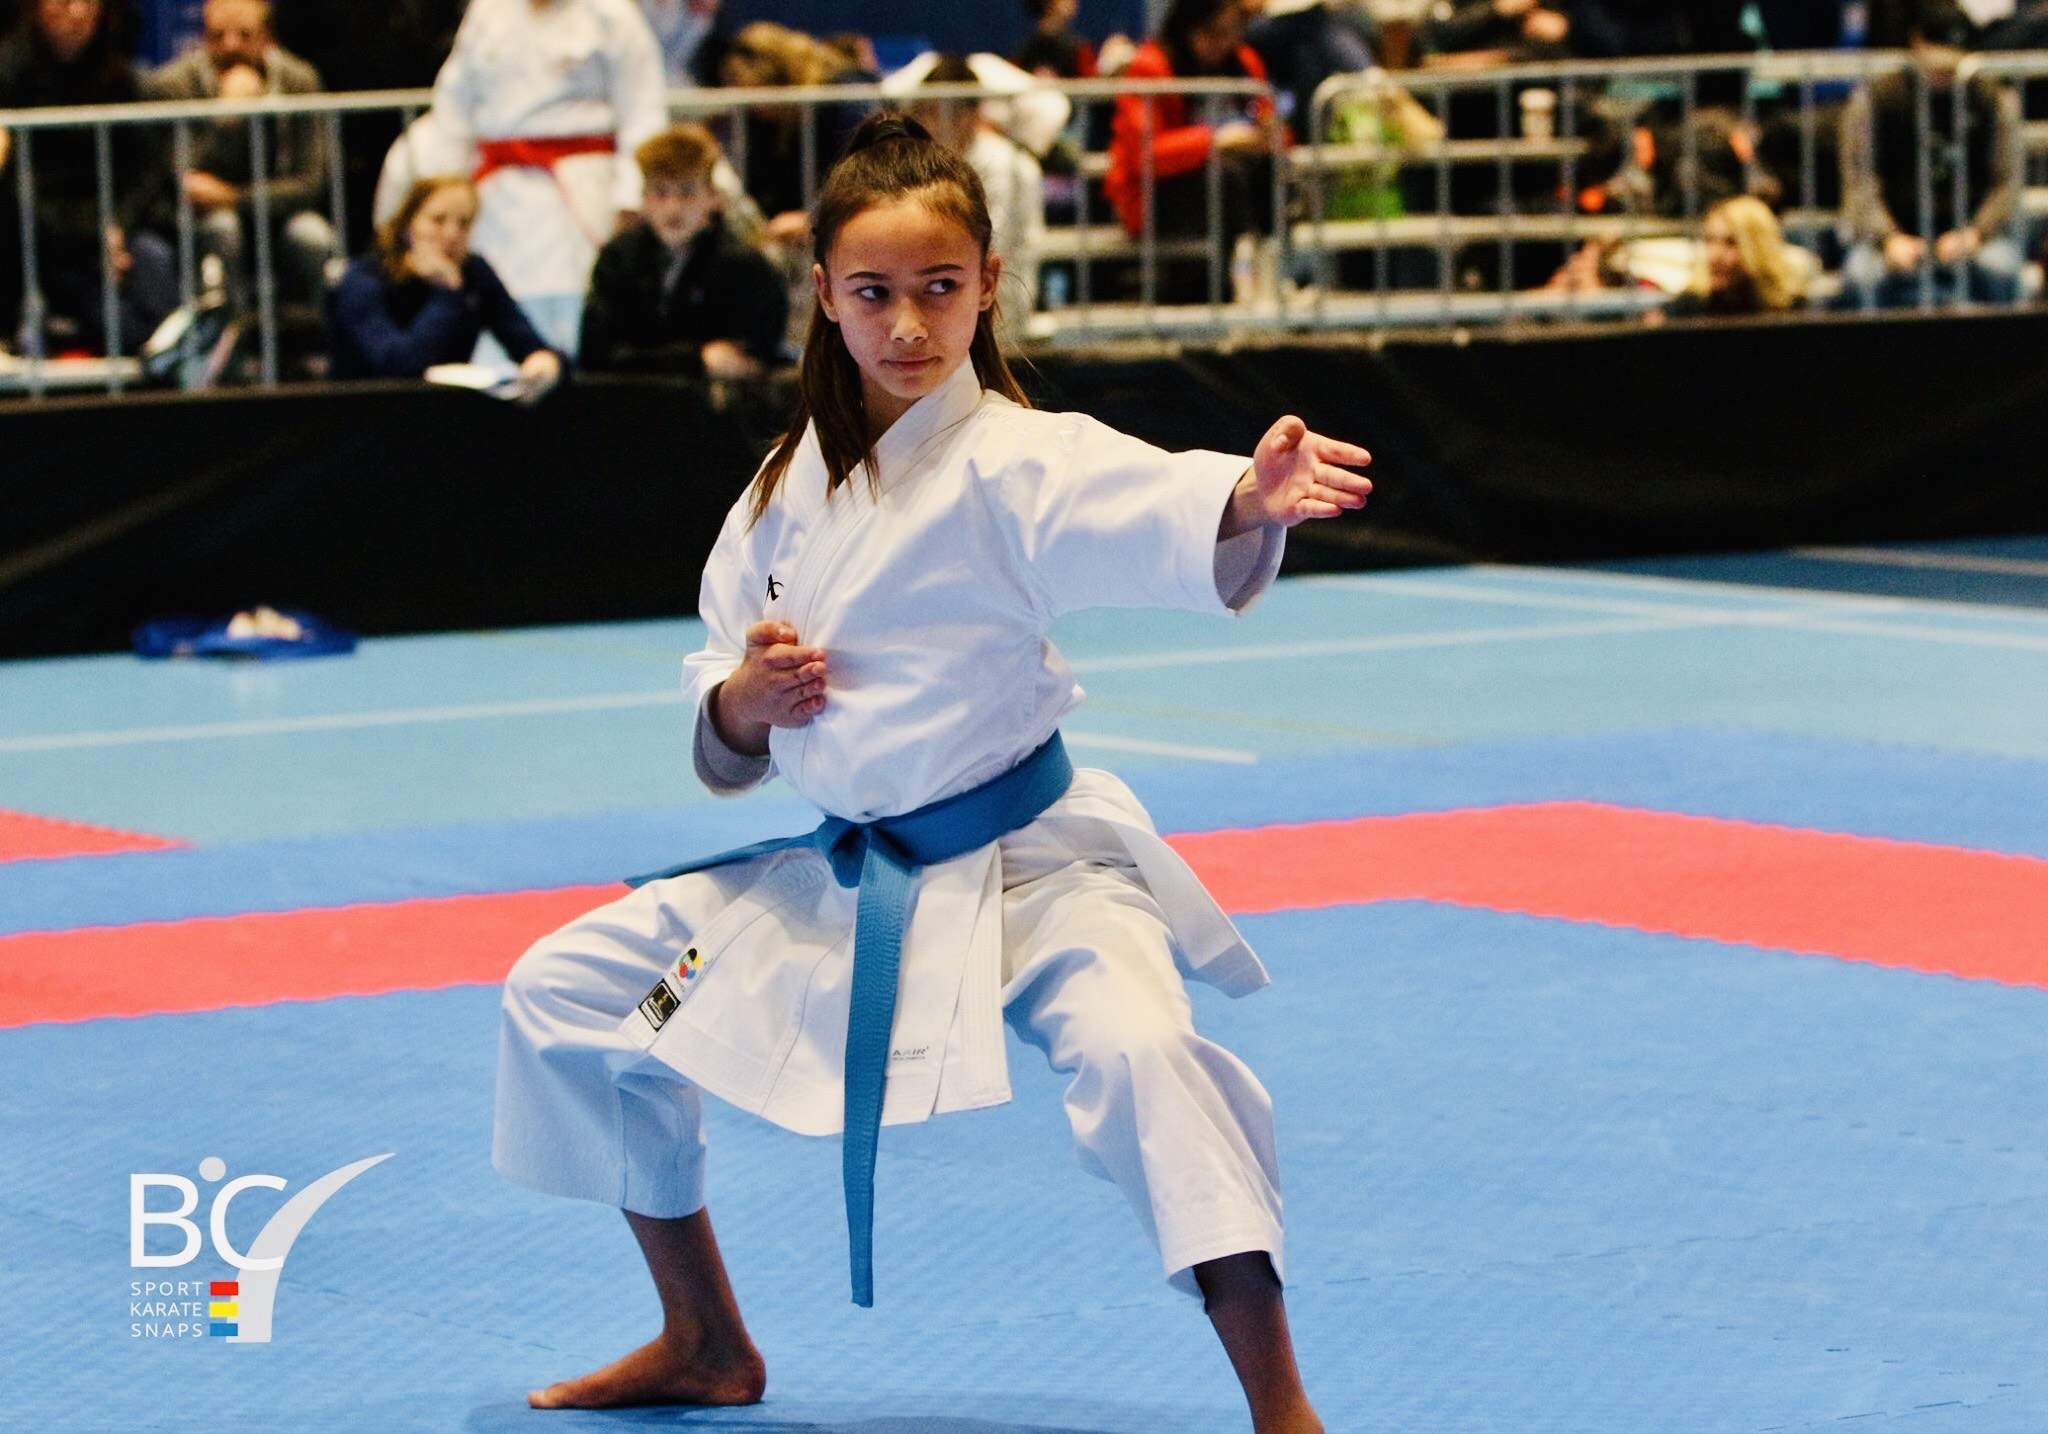 BC Sport Karate Snaps for Photos with permission